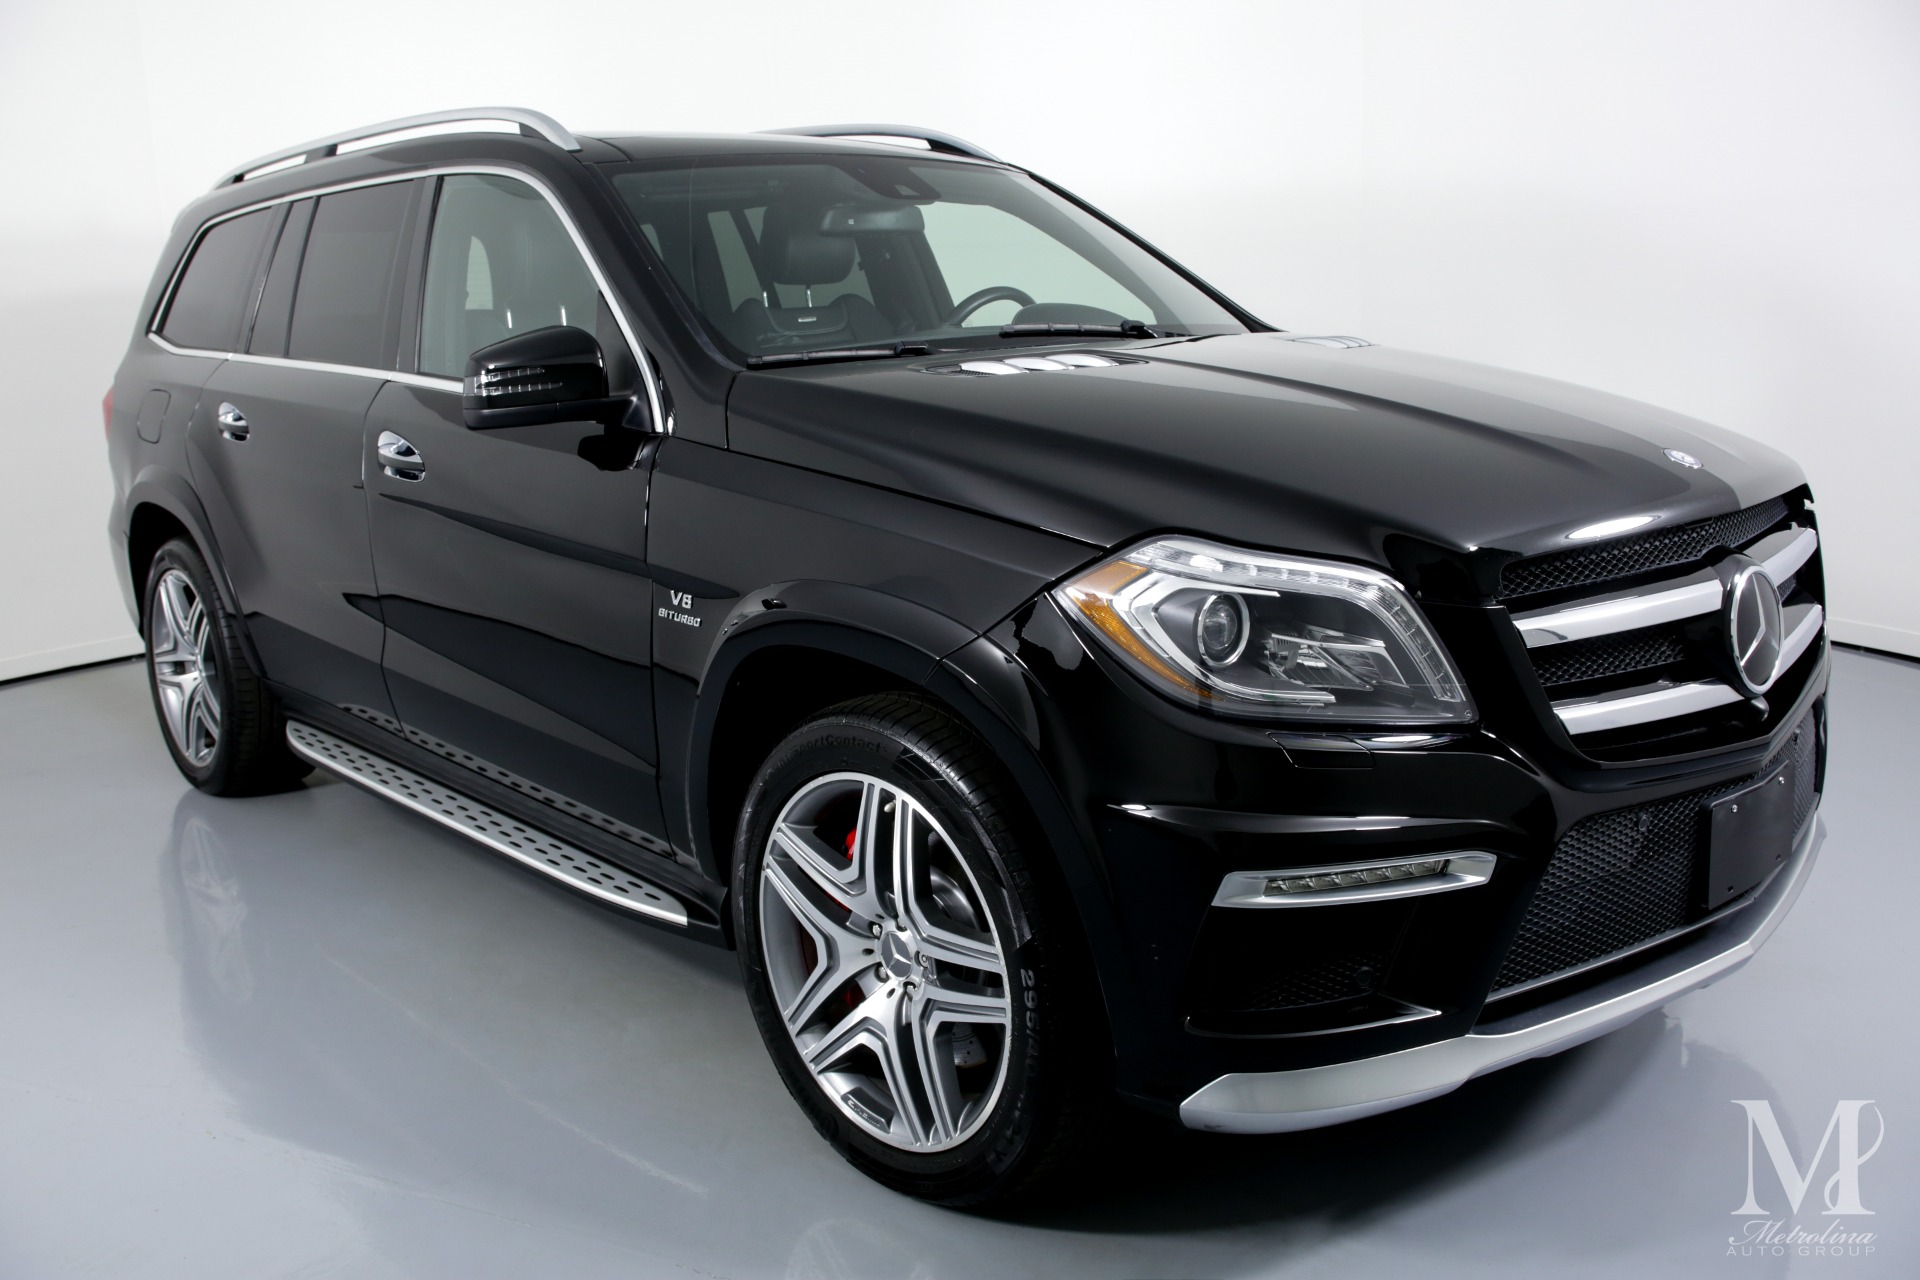 Used 2015 Mercedes-Benz GL-Class GL 63 AMG AWD 4MATIC 4dr SUV for sale $44,996 at Metrolina Auto Group in Charlotte NC 28217 - 2